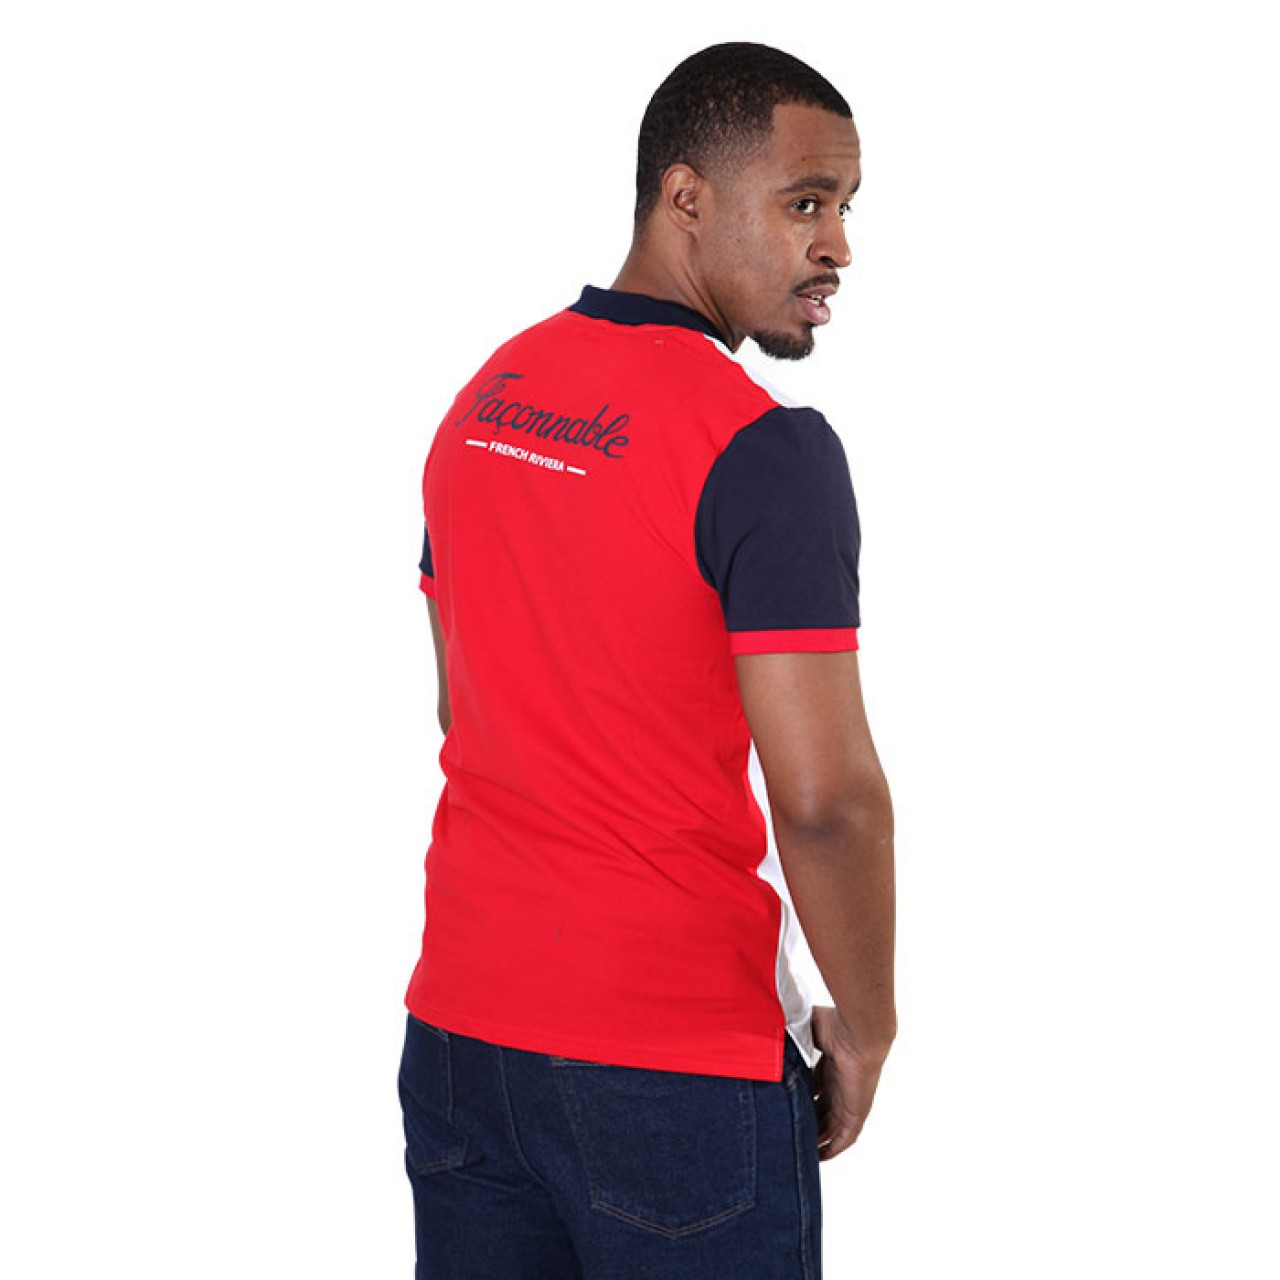 Men's White Red Sleeve Collared Tees